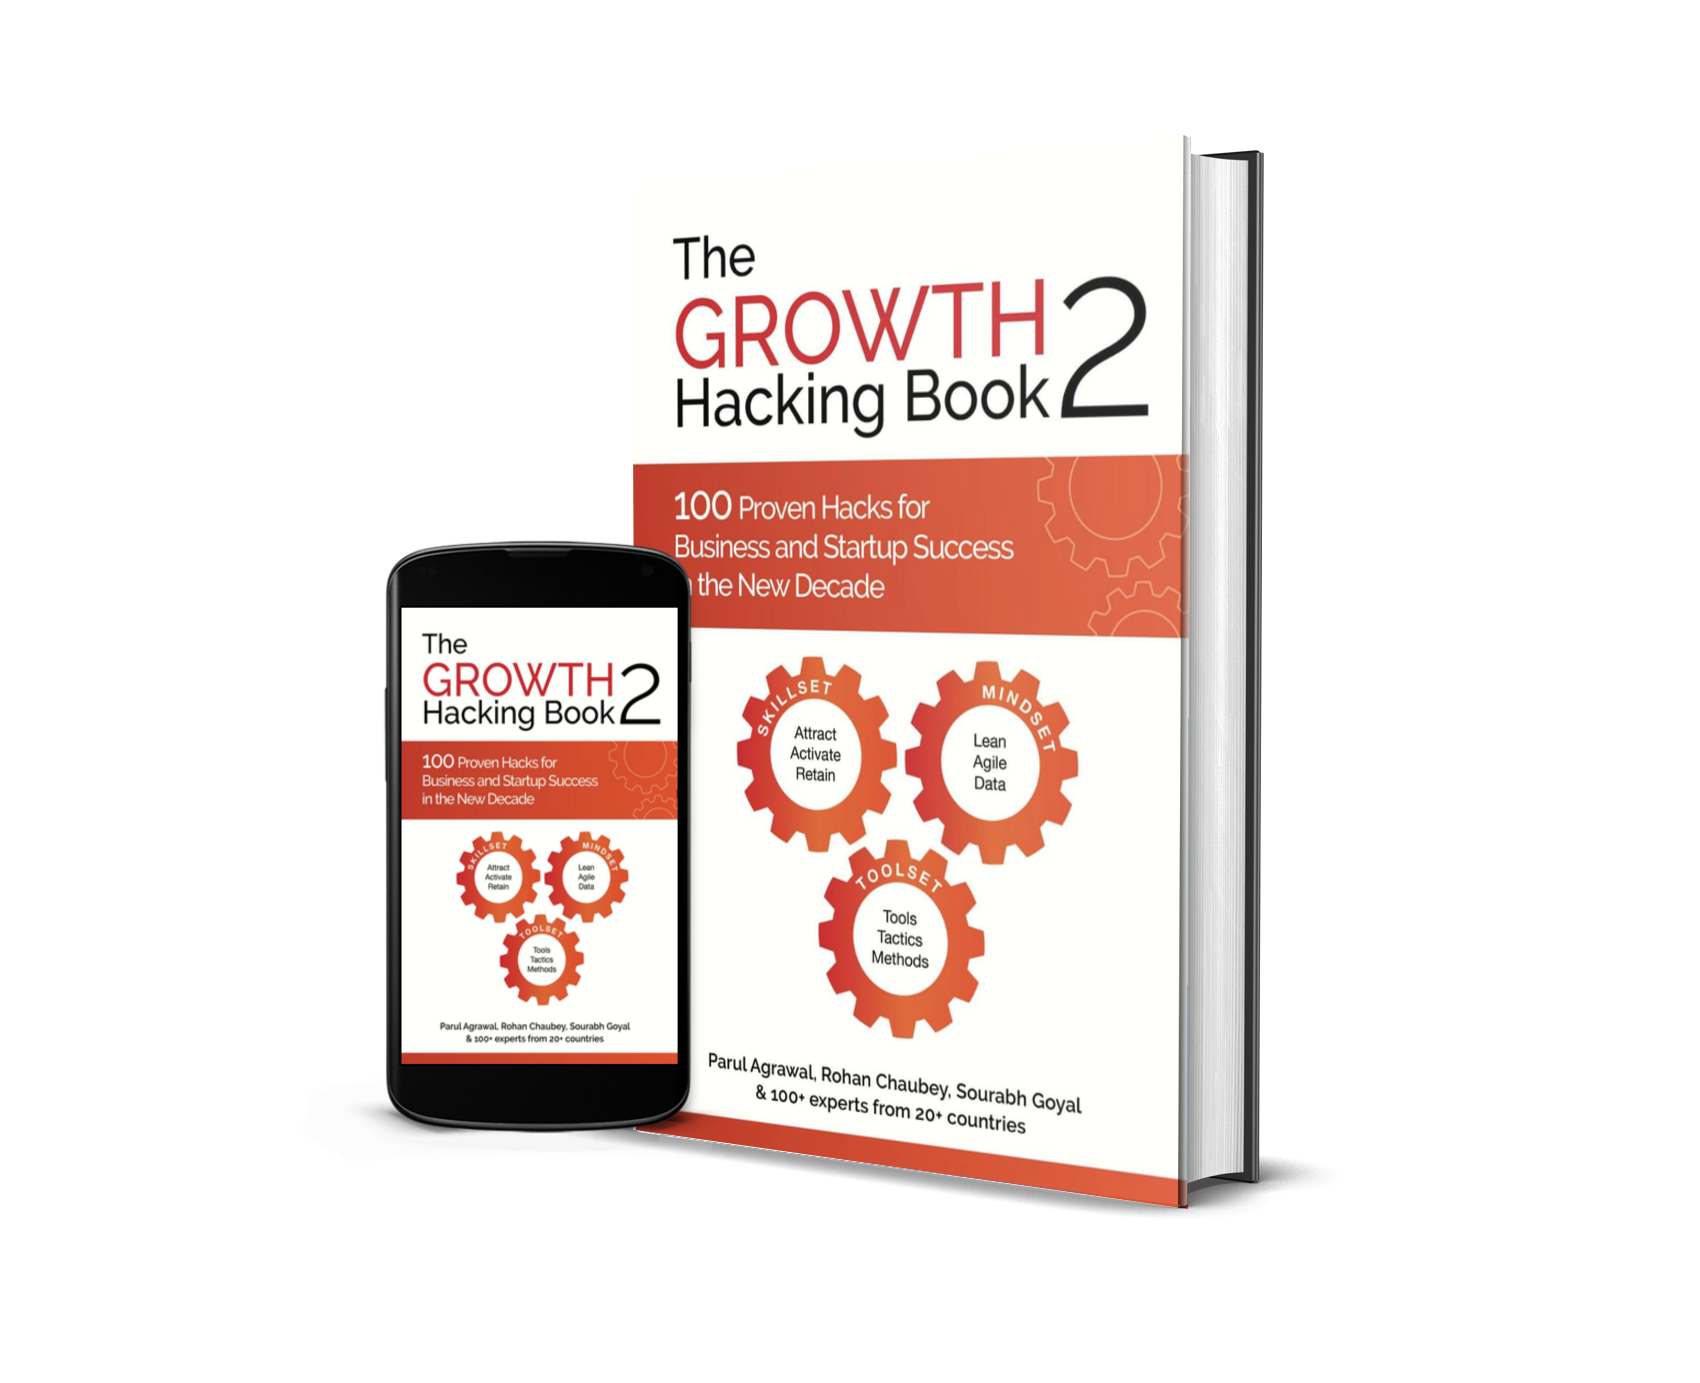 The-Growth-Hacking-Book-2